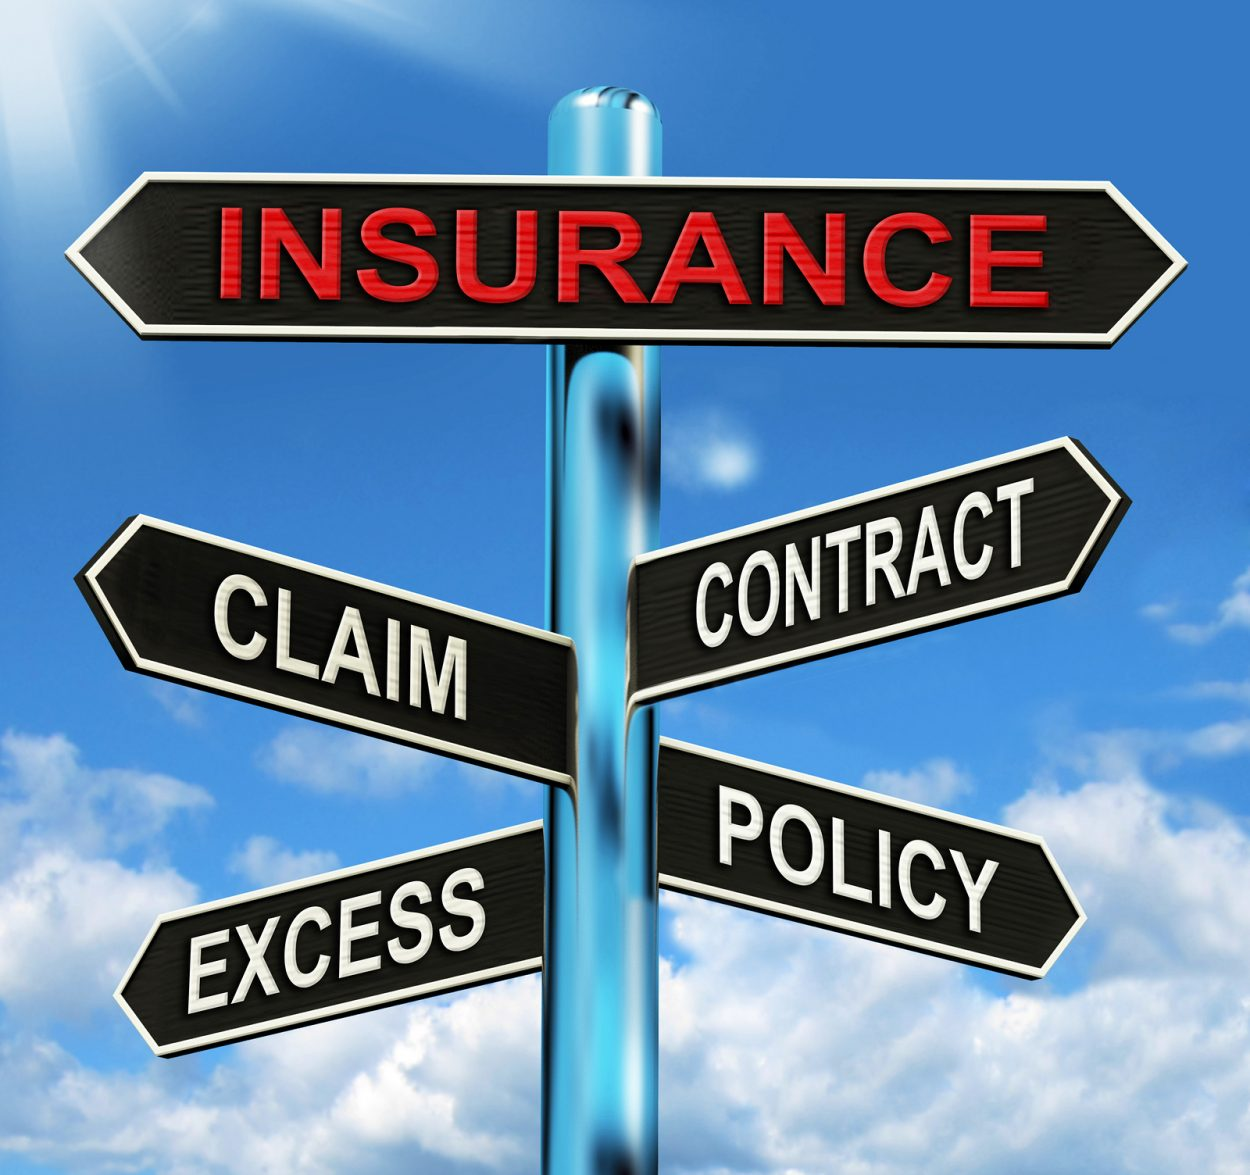 Insurance Signpost Meaning Claim Excess Contract And Policy